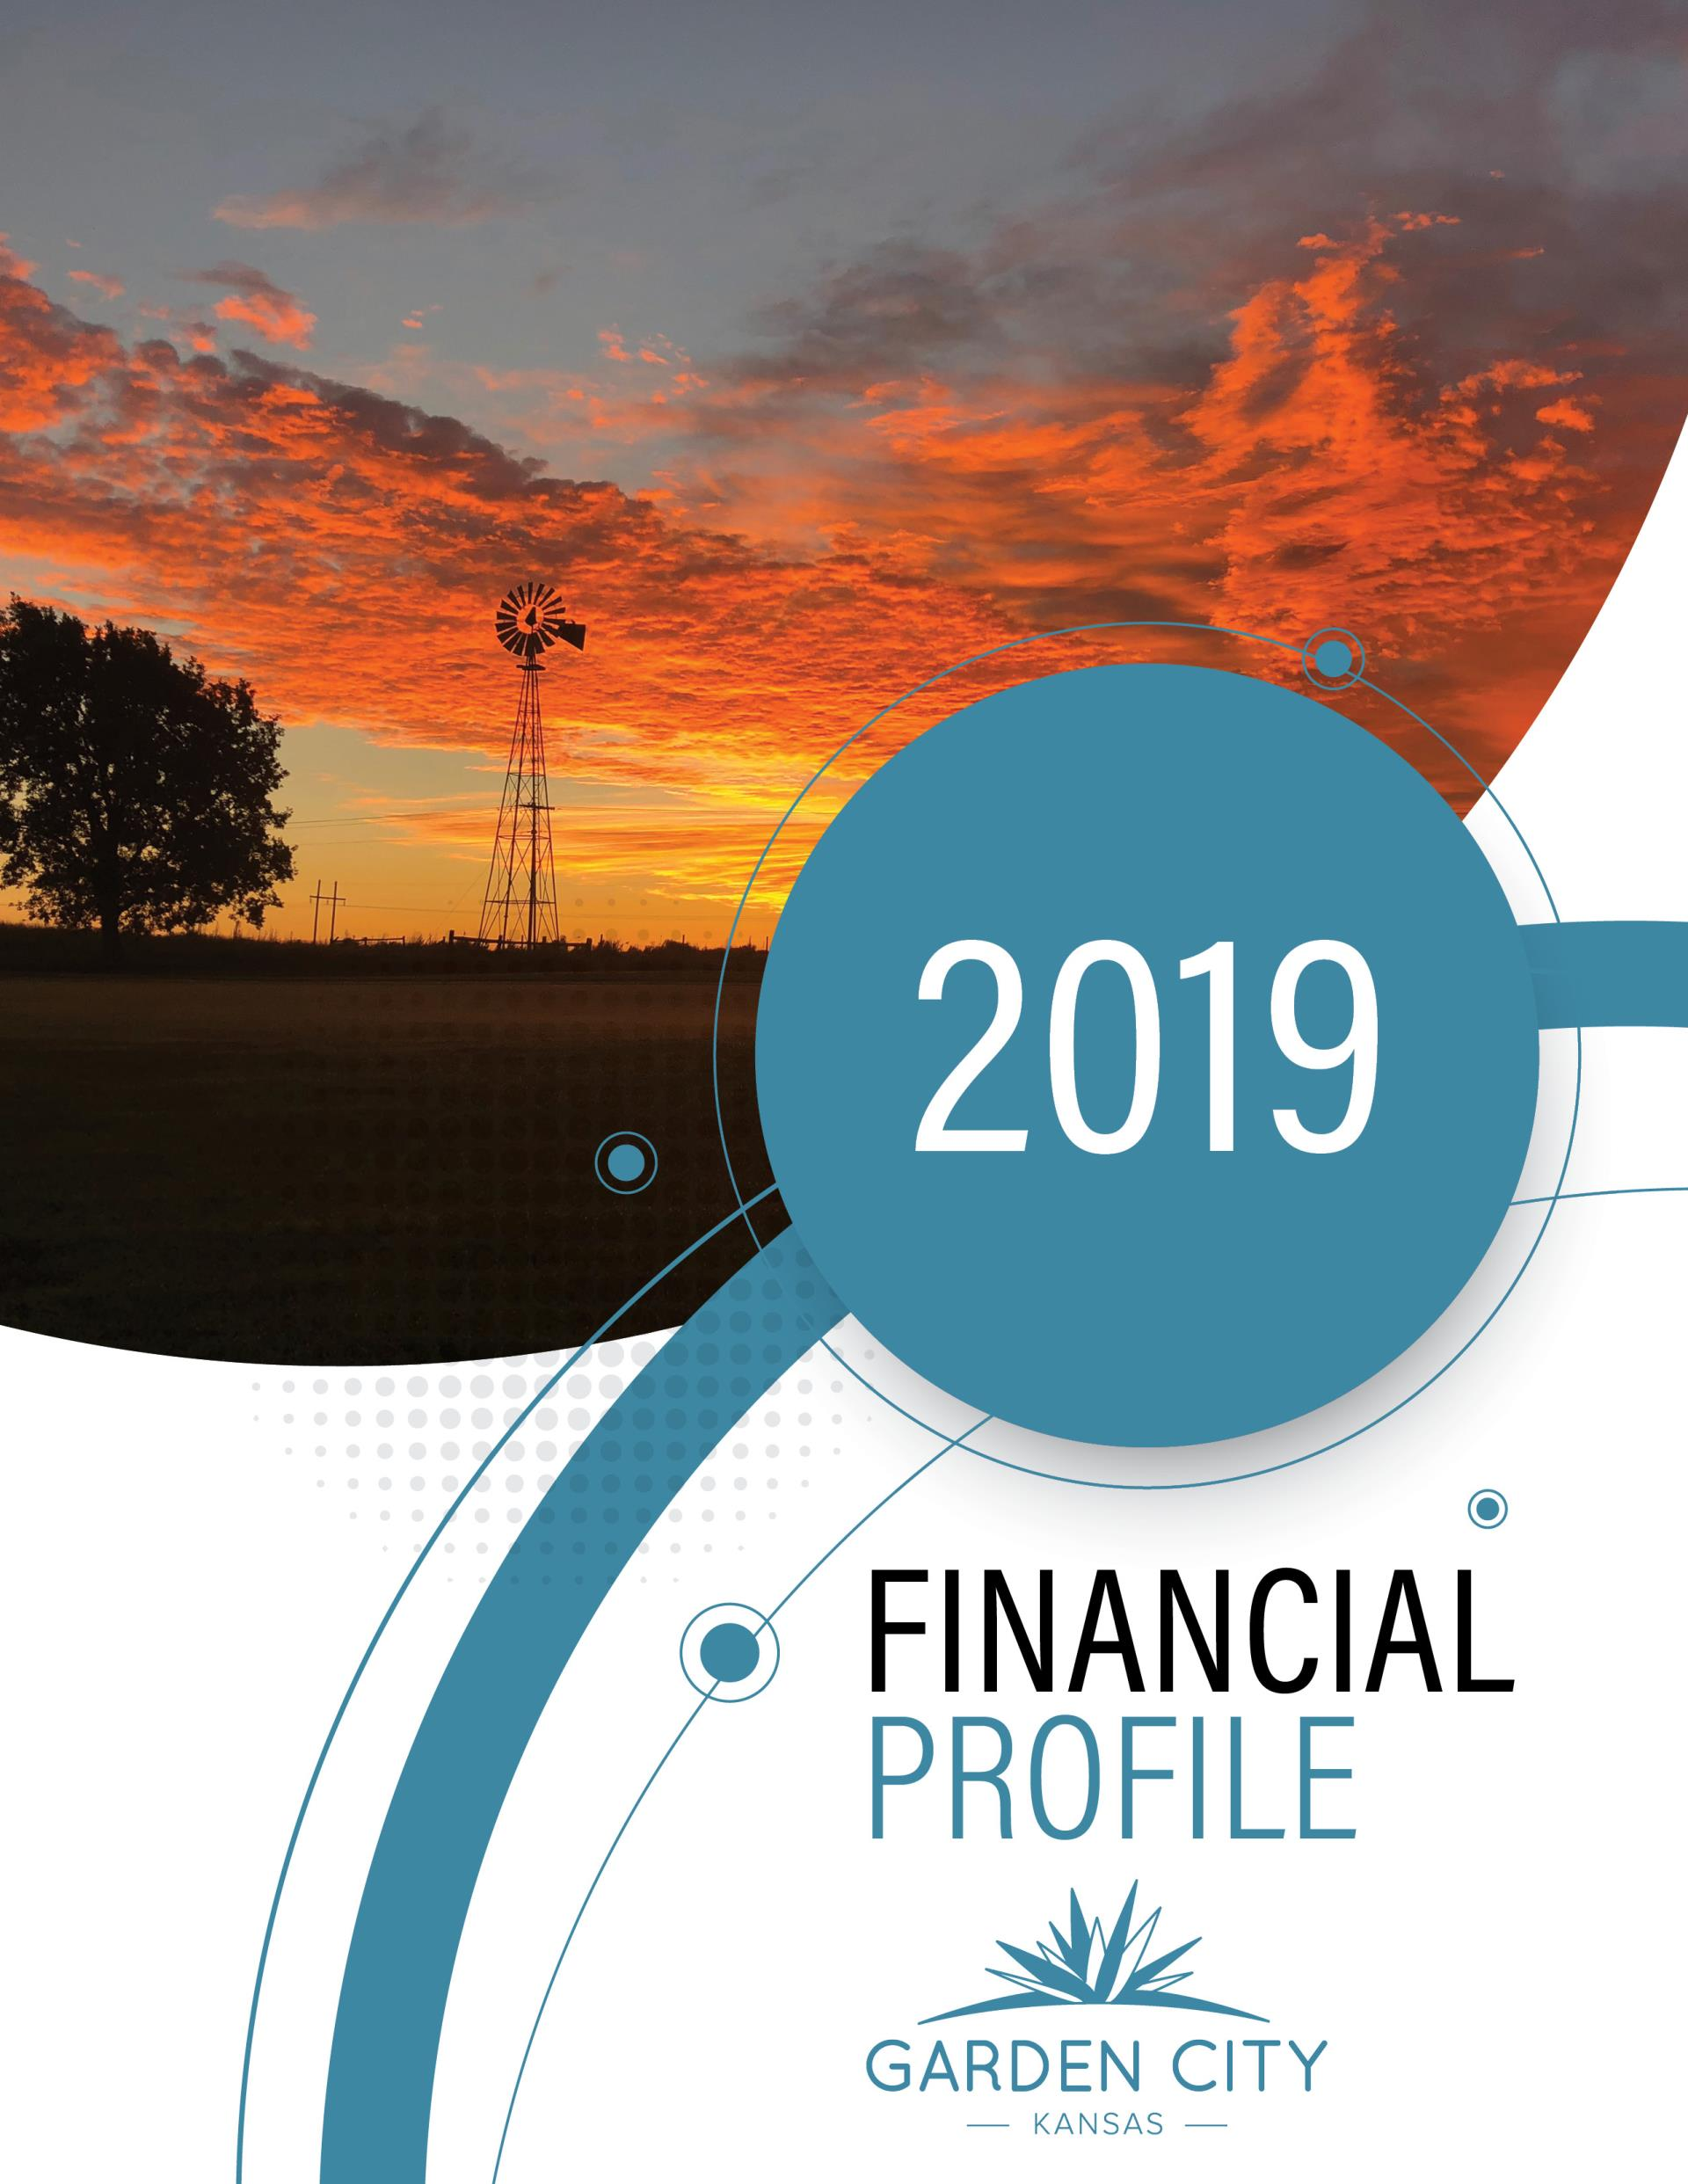 City of Garden City Financial Profile